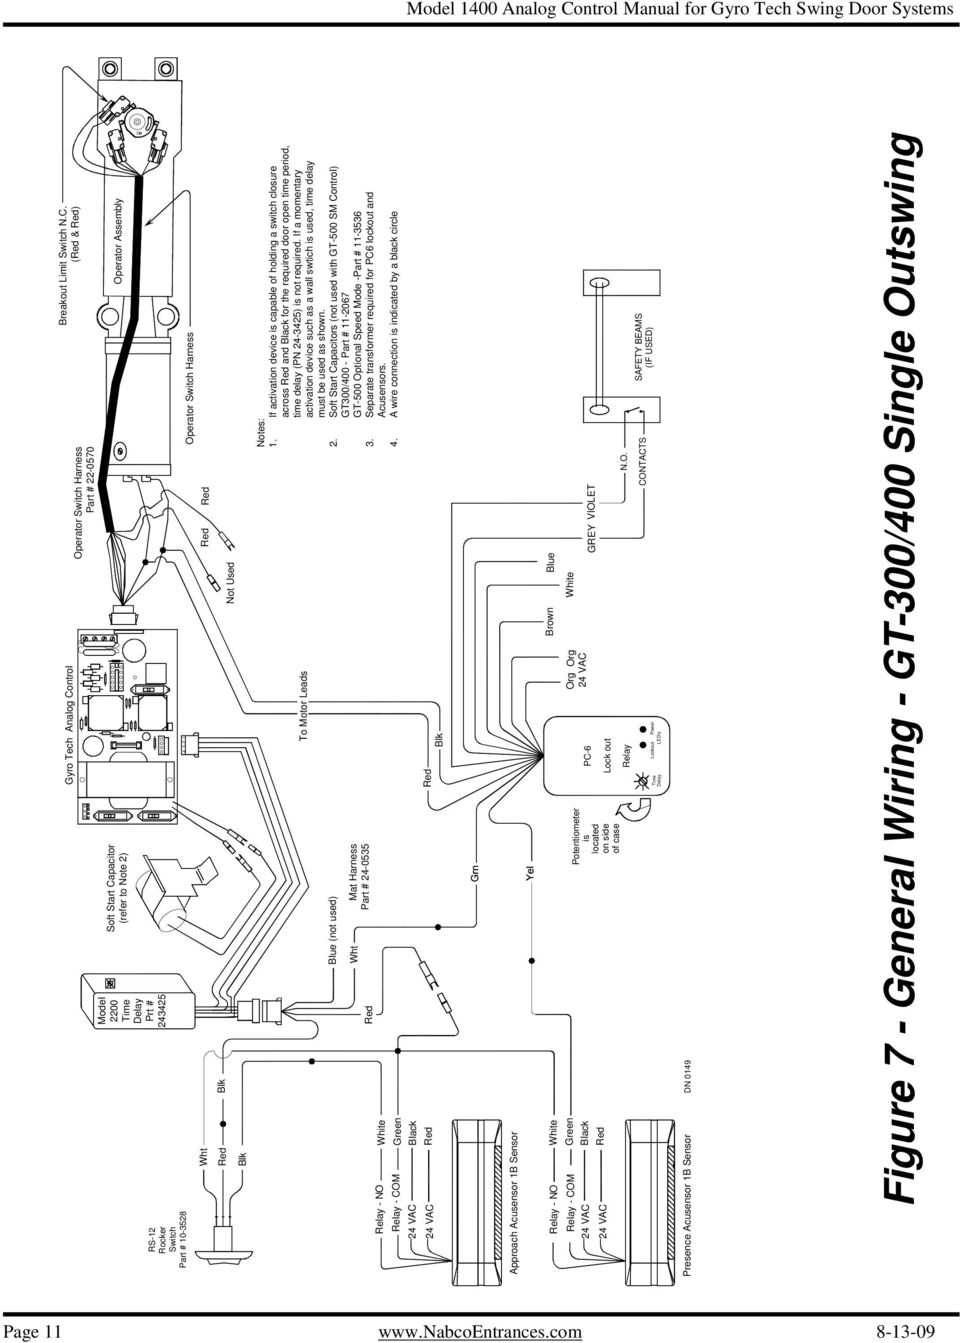 analog control wiring  u0026 adjustment manual for gyro tech